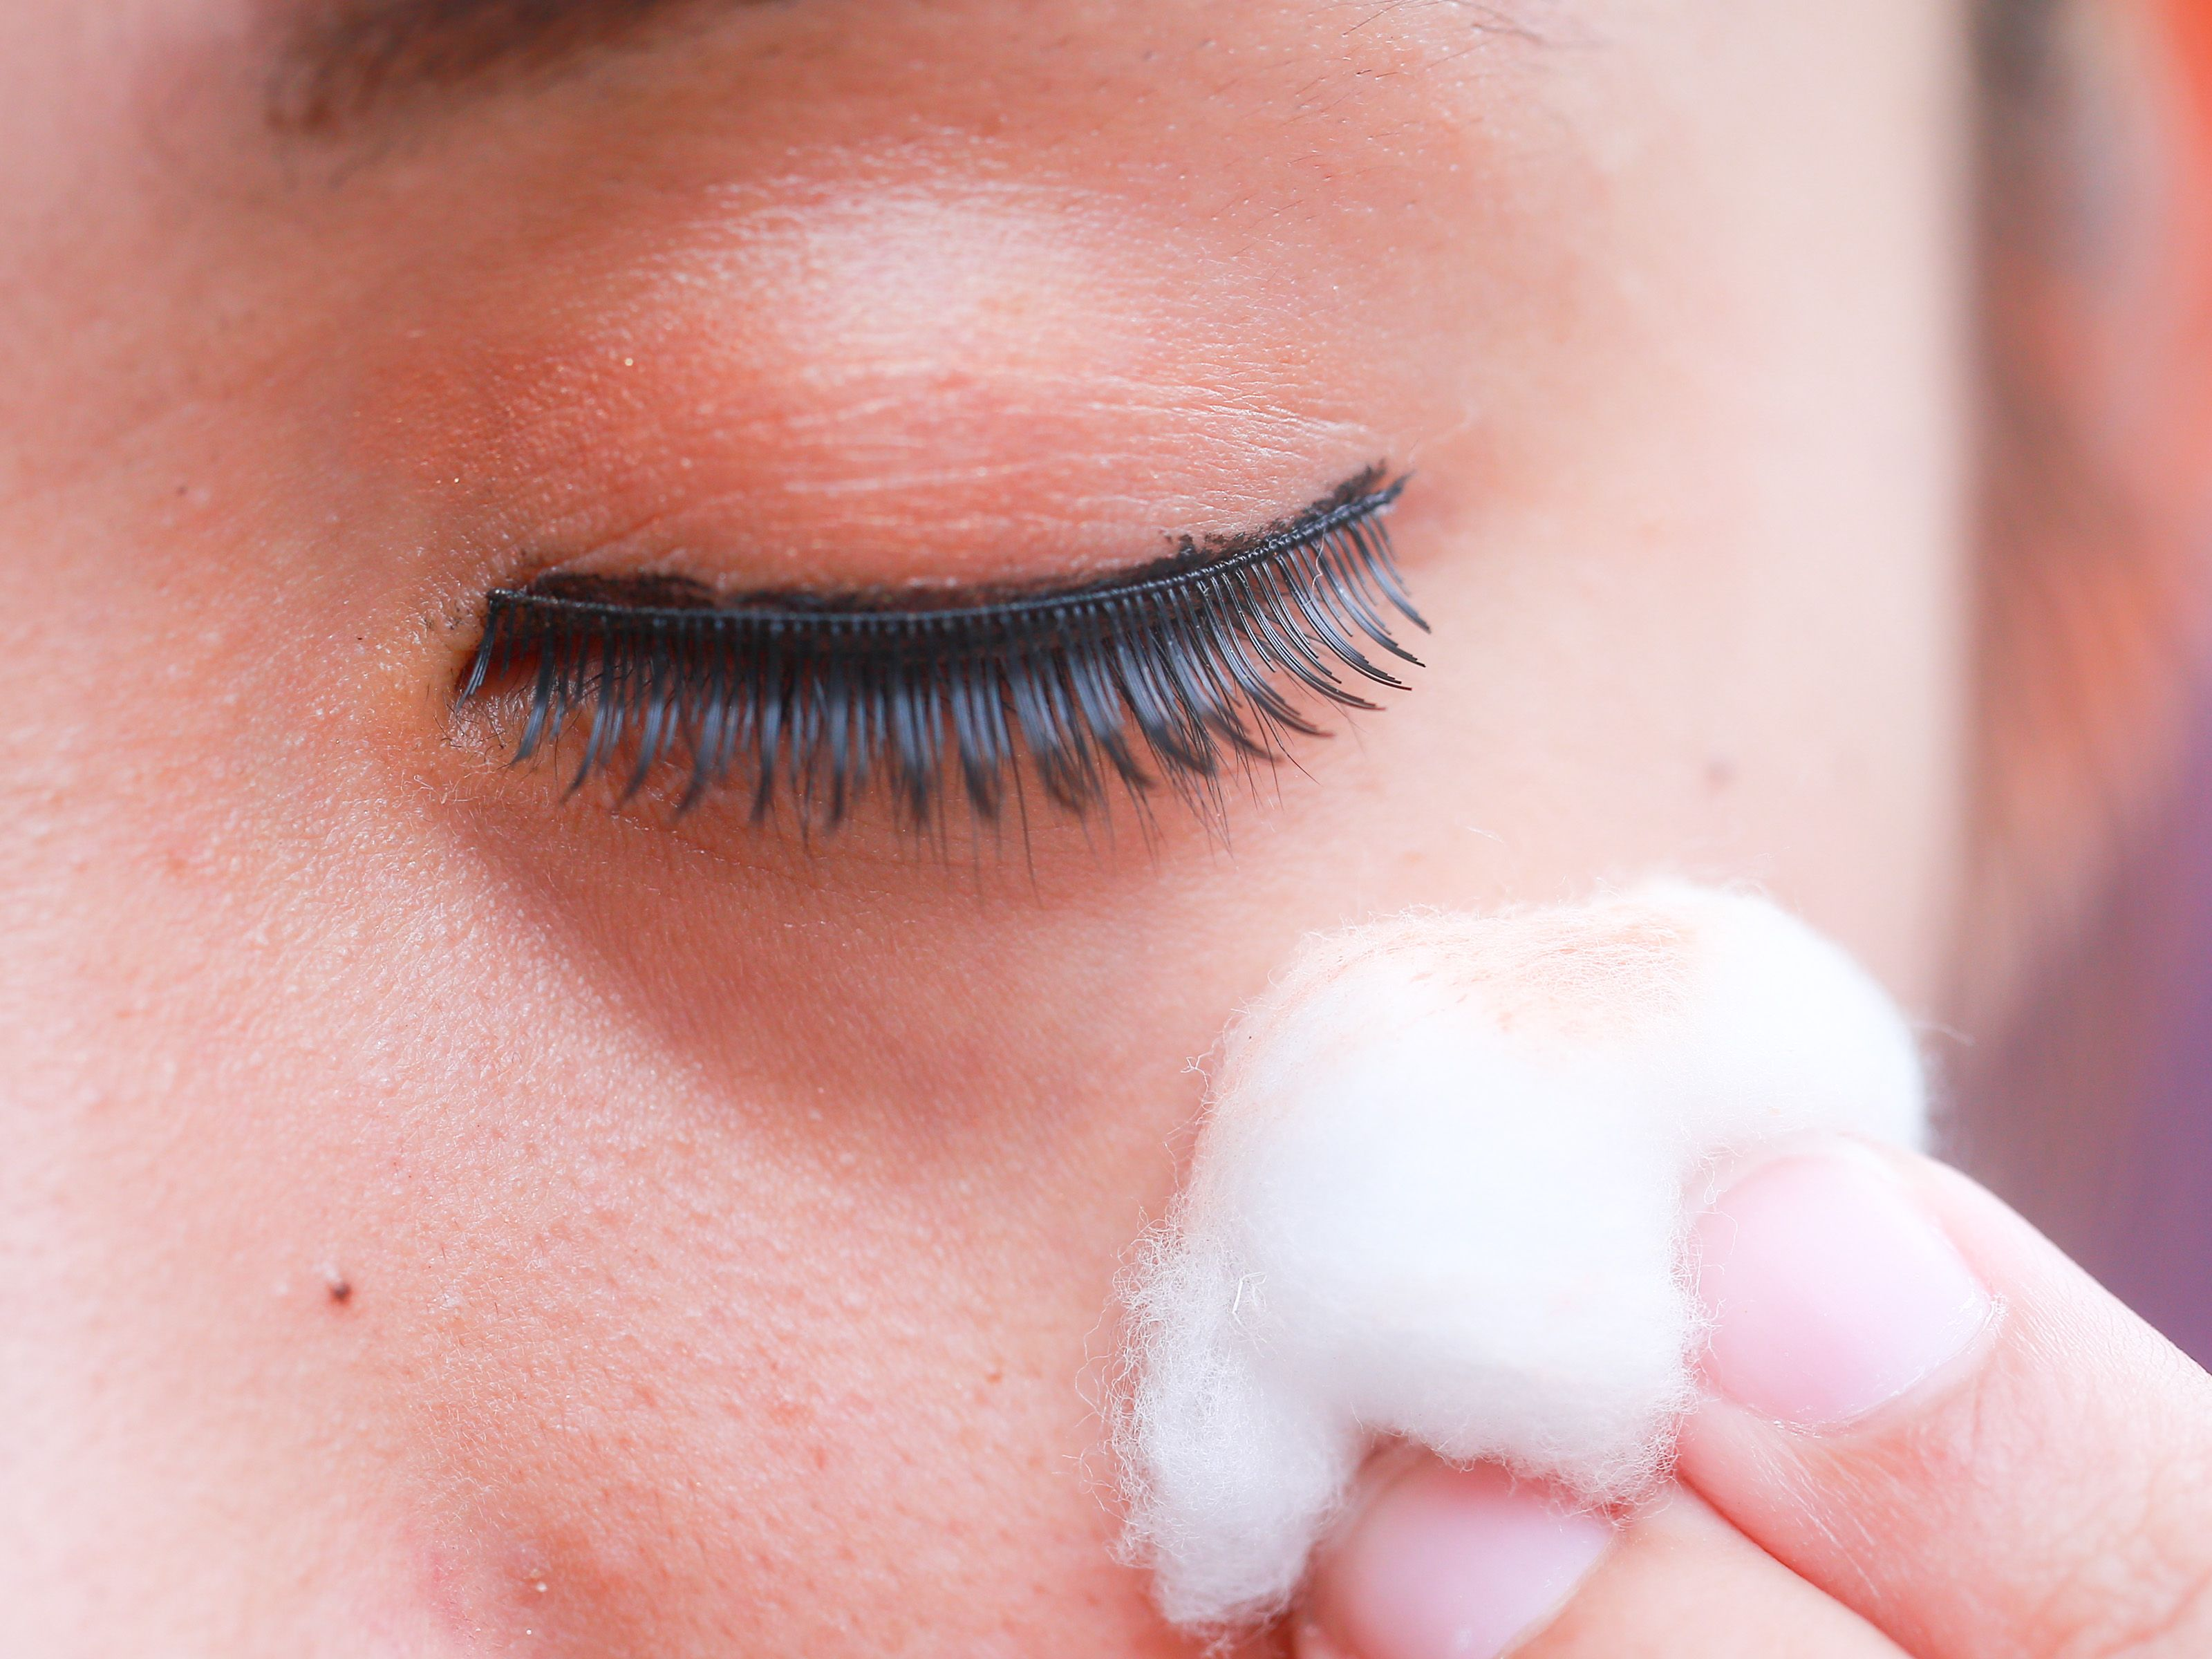 How To Get Rid Of Puffy Eyes From Crying With Tea Bags in